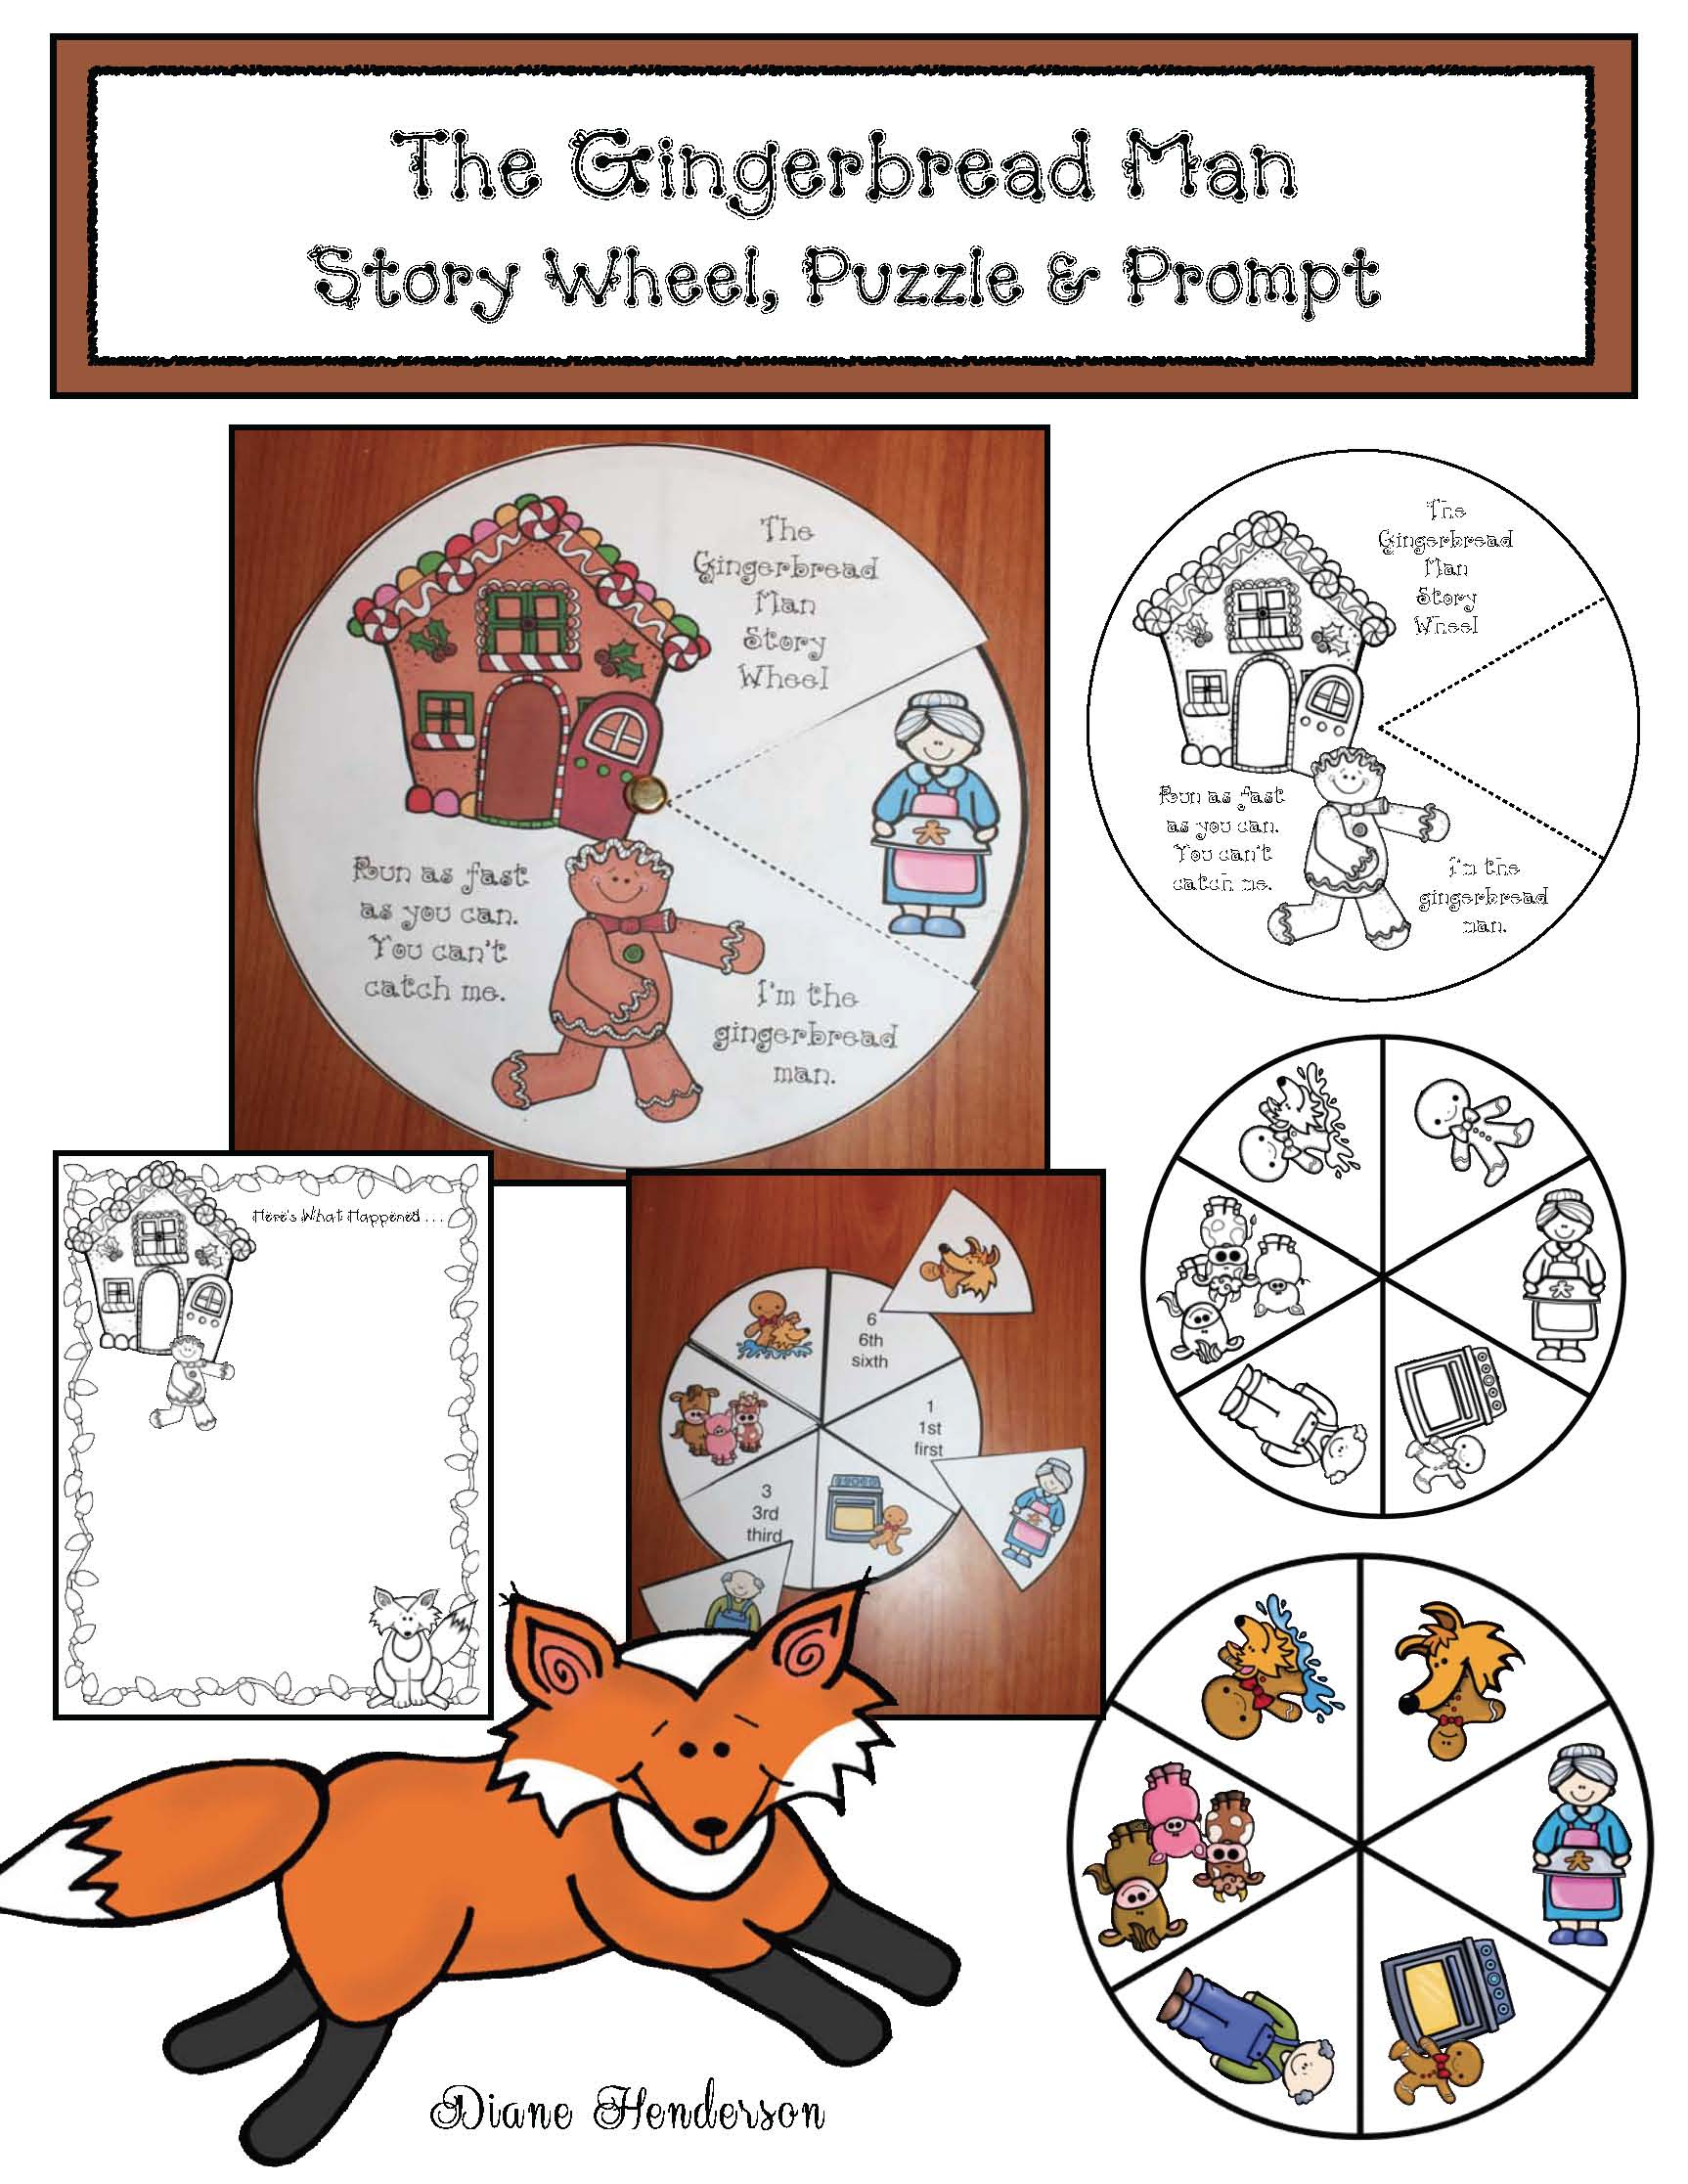 gingerbread crafts, gingerbread activities, gingerbread games, common core gingerbread, activities for the gingerbread man story, story elements for the gingervread man, venn diagram activities, writing prompts for December, class made books for December, Daily 5 actiivities for December, story wheels